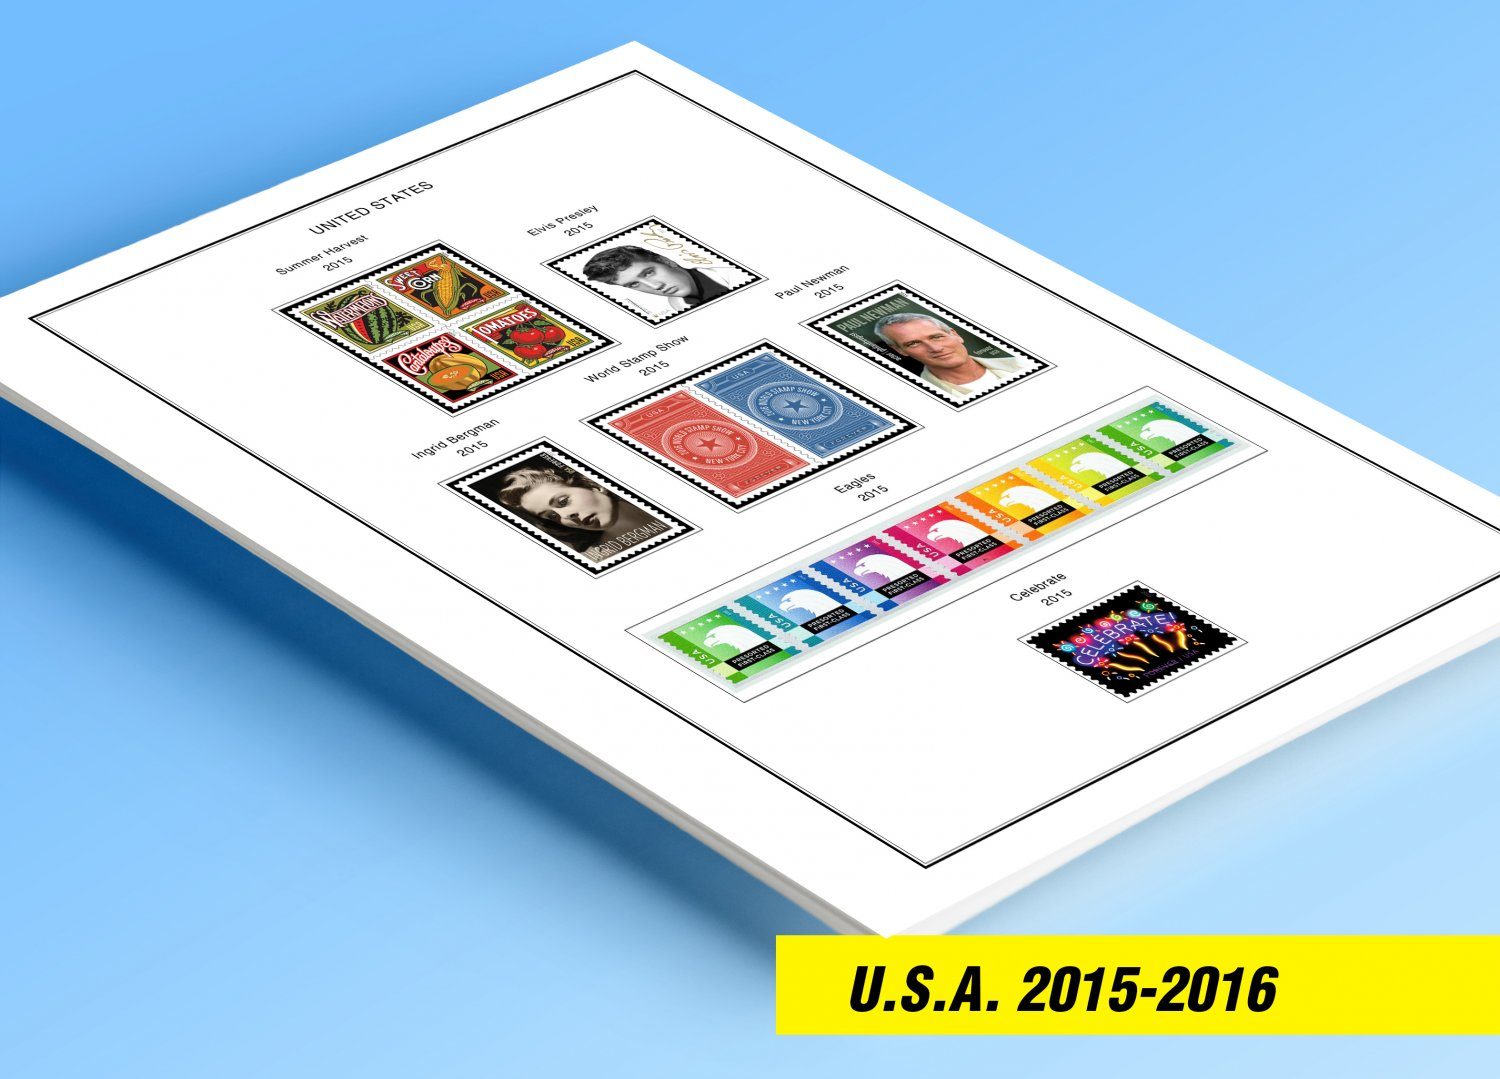 COLOR PRINTED U.S.A. 2015-2016 STAMP ALBUM PAGES (15 illustrated pages)